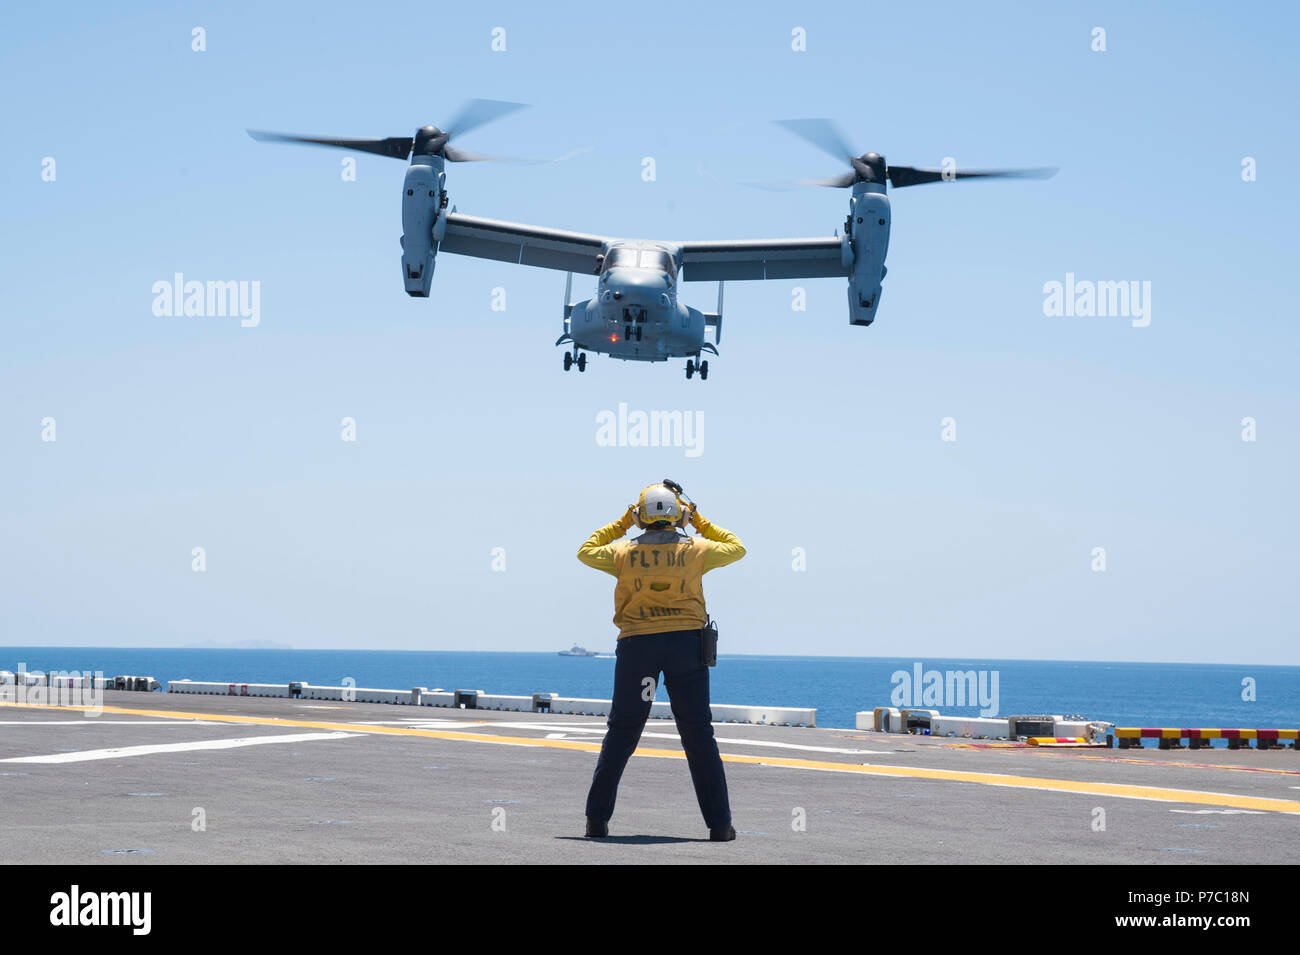 """180703-N-RD713-186 PACIFIC OCEAN,  (July 3, 2018) Aviation Boatswain's Mate (Handling) 3rd Class Tiffanie Allenderriley, from Joplin, Mo., signals an MV-22B Osprey, assigned to the """"Red Lions"""" of Marine Medium Tiltrotor Squadron (VMM) 363, for landing on the flight deck of the amphibious assault ship USS Bonhomme Richard (LHD 6). Bonhomme Richard is currently underway in the U.S. 3rd Fleet area of operations. (U.S. Navy photo by Mass Communication Specialist 3rd Class Zachary DiPadova) Stock Photo"""